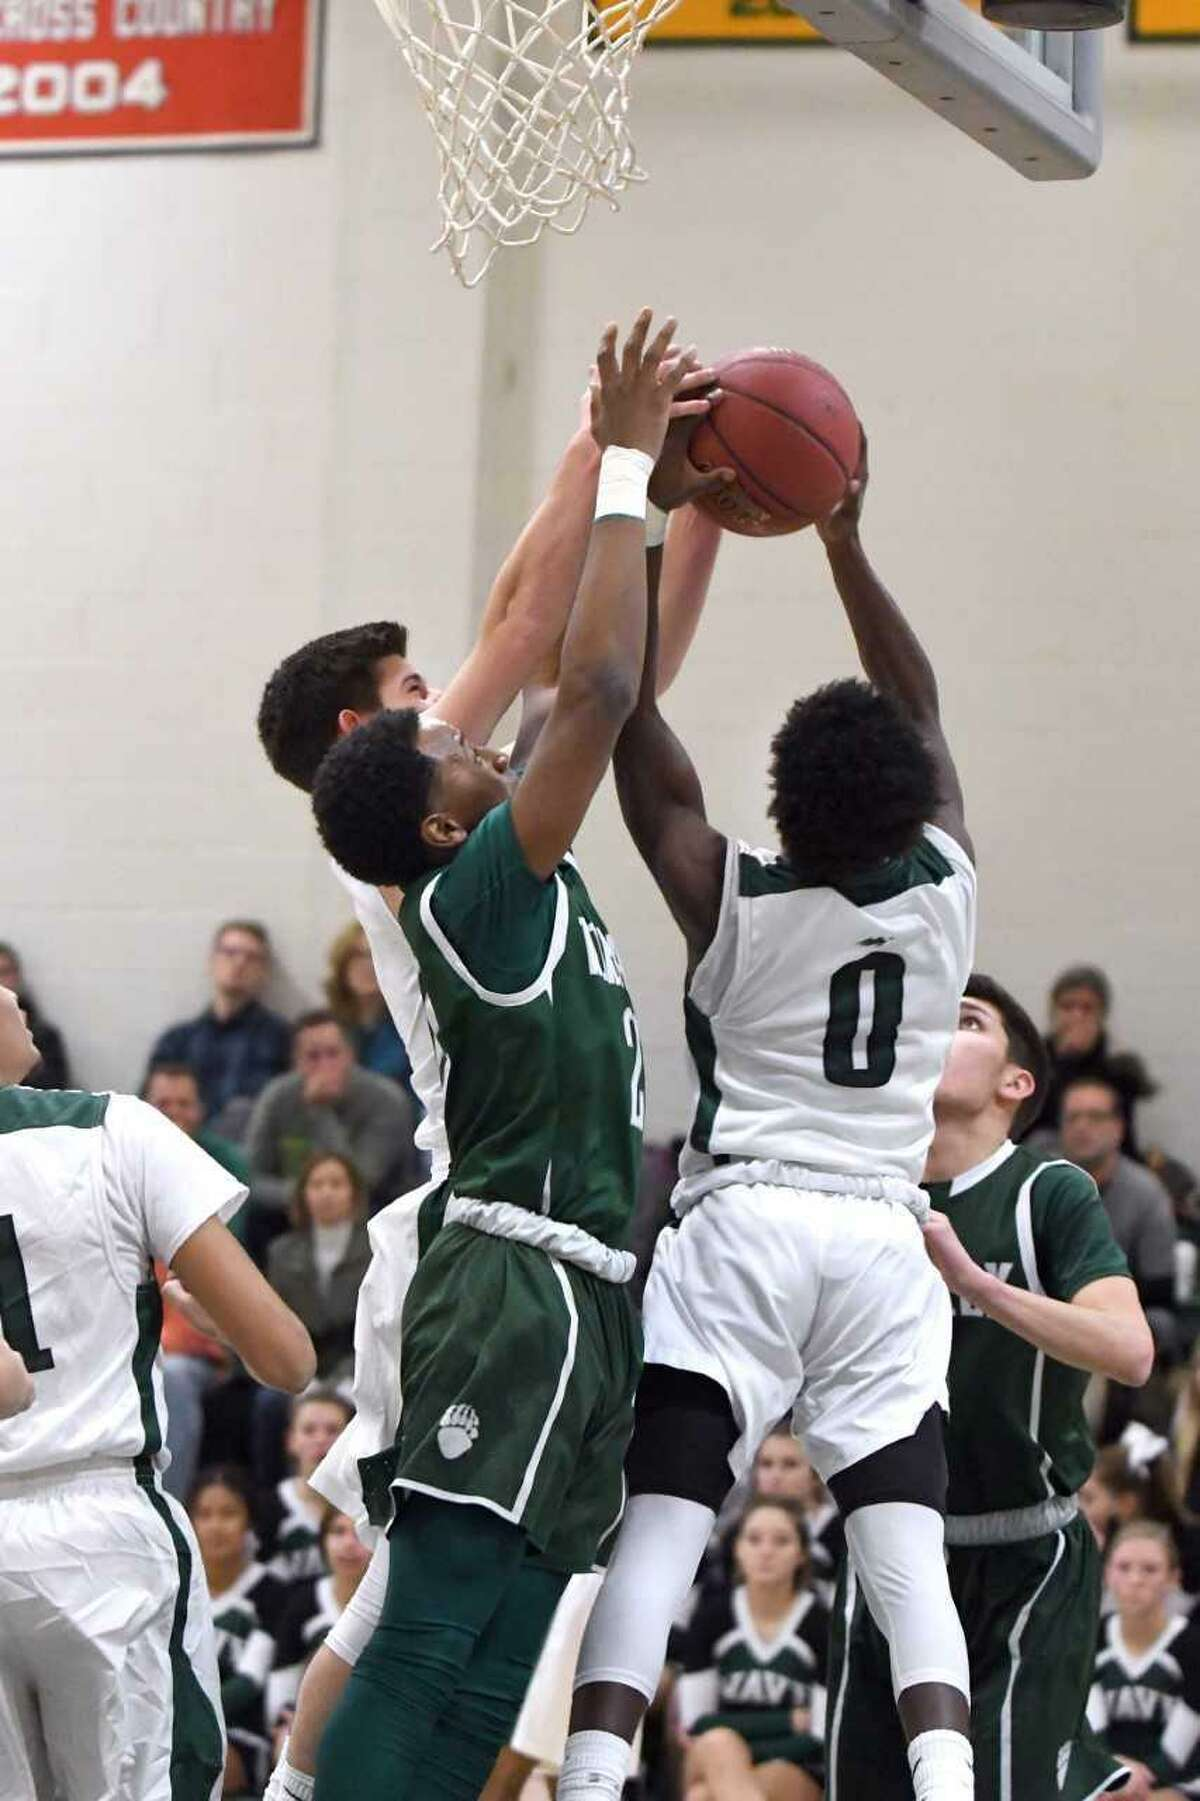 From left, New Milford's Christopher Gesauldi, Norwalk's Zyaire Sellers, and New Milford's Malik Proctor vie for the ball Monday night in New Milford.